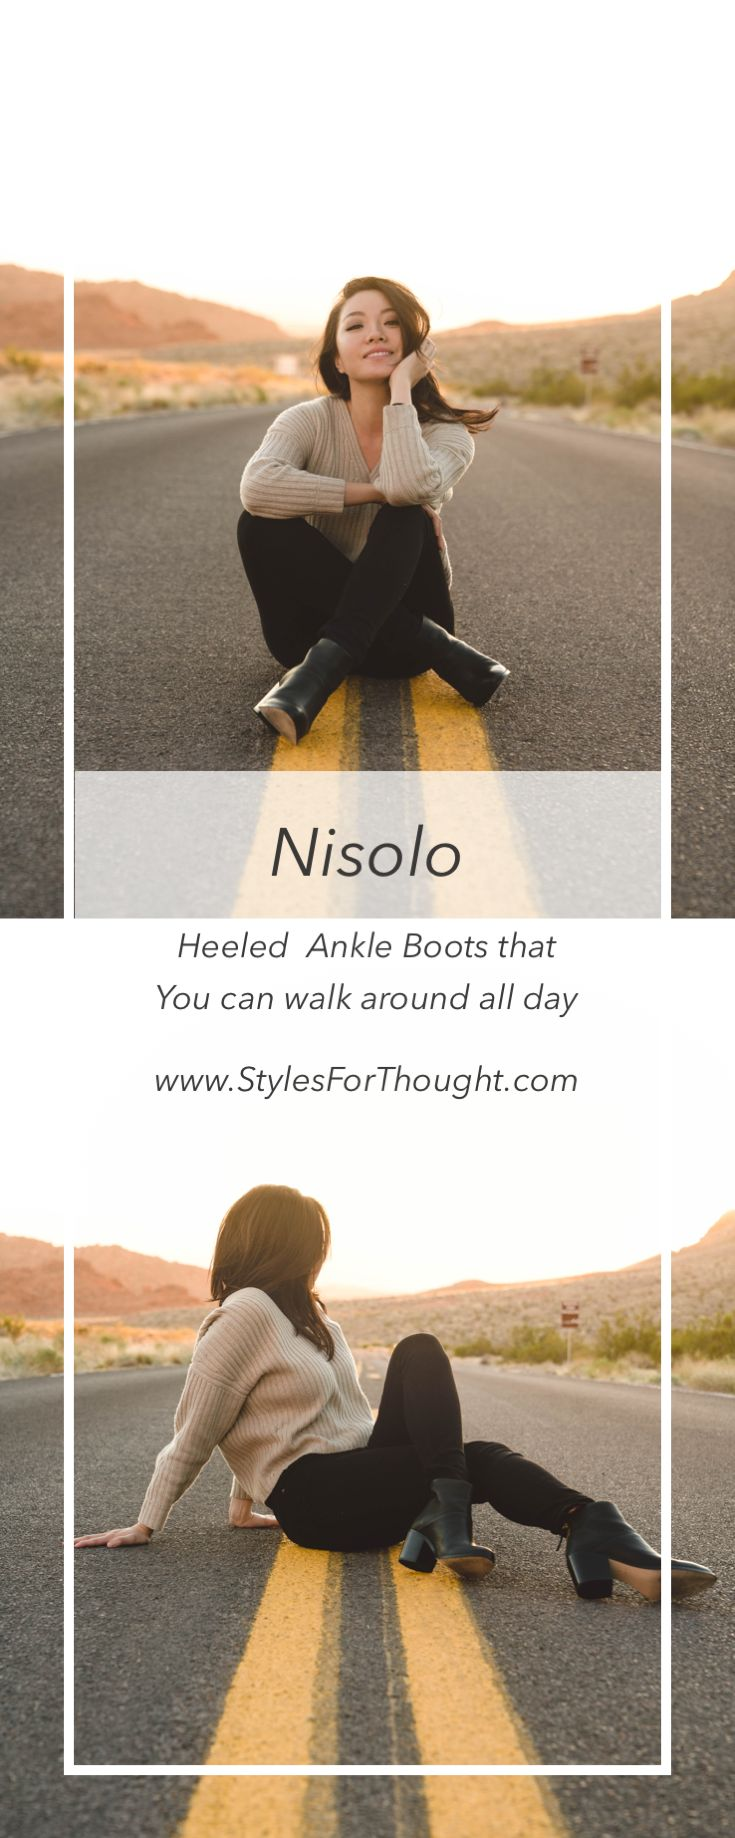 Nisolo Dari Ankle Boots -Sustainable shoes that you NEVER want to take off!